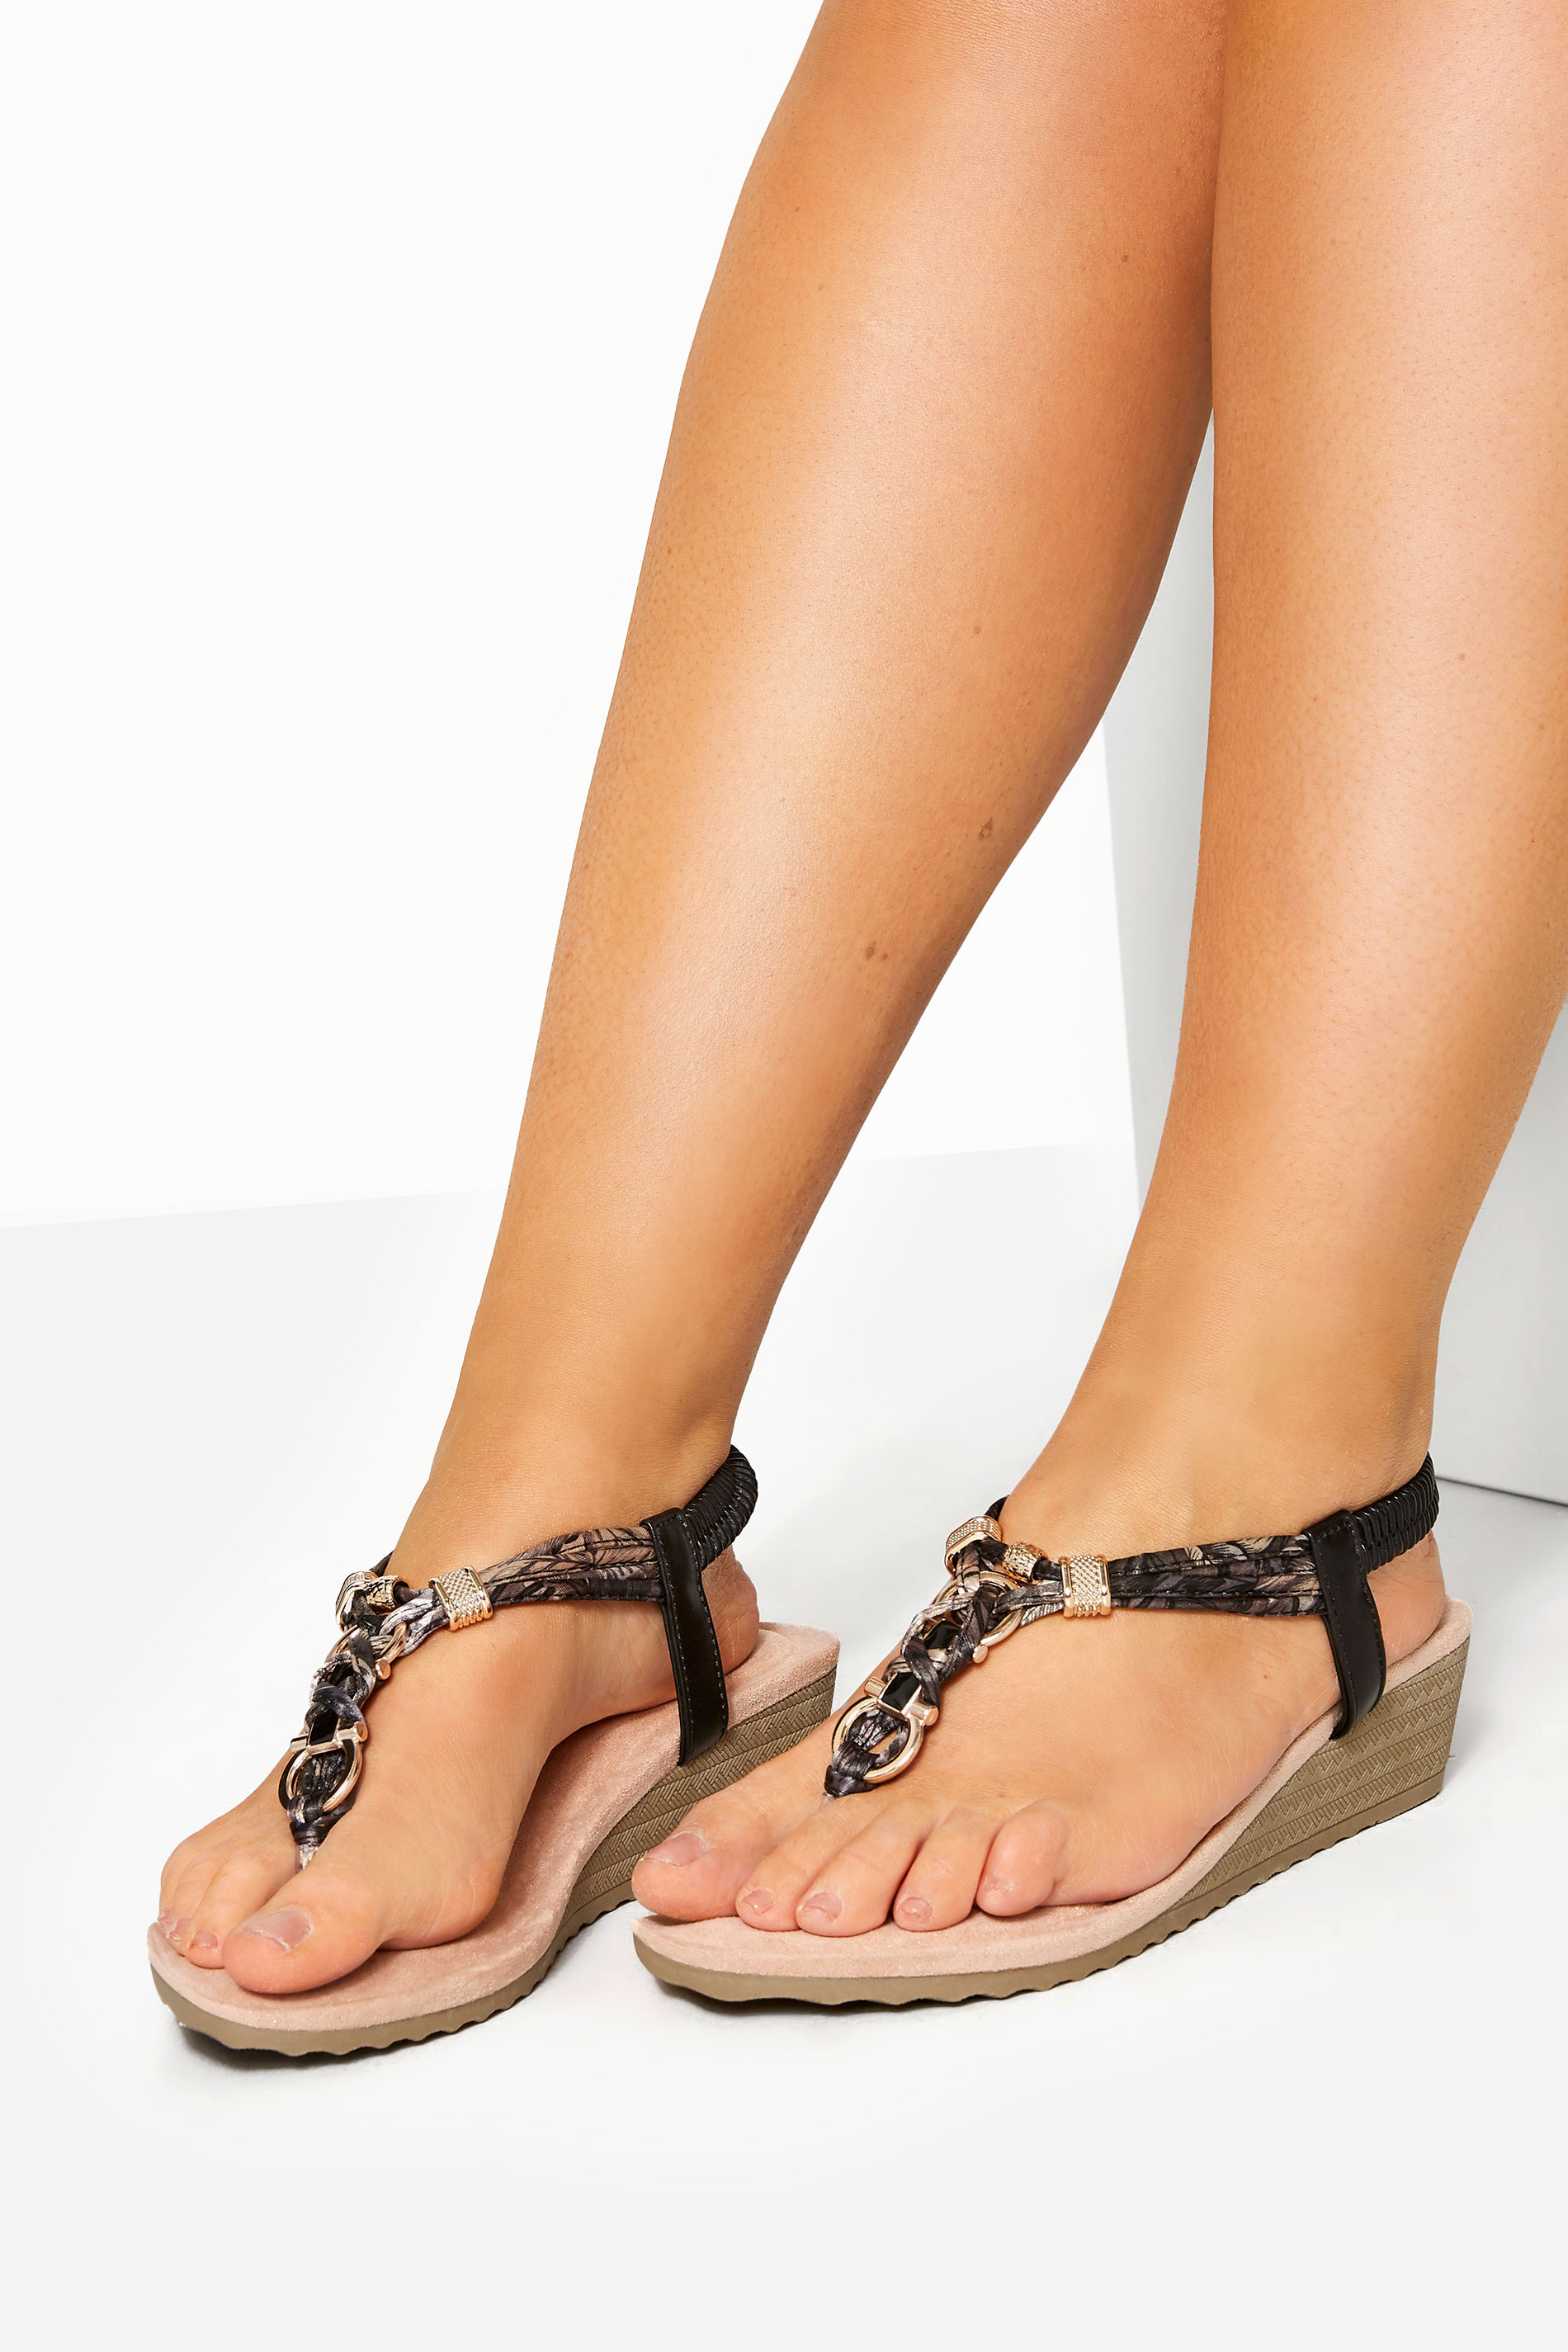 Black Twist Gold Tone Heeled Sandals In Extra Wide Fit_154302A1.jpg